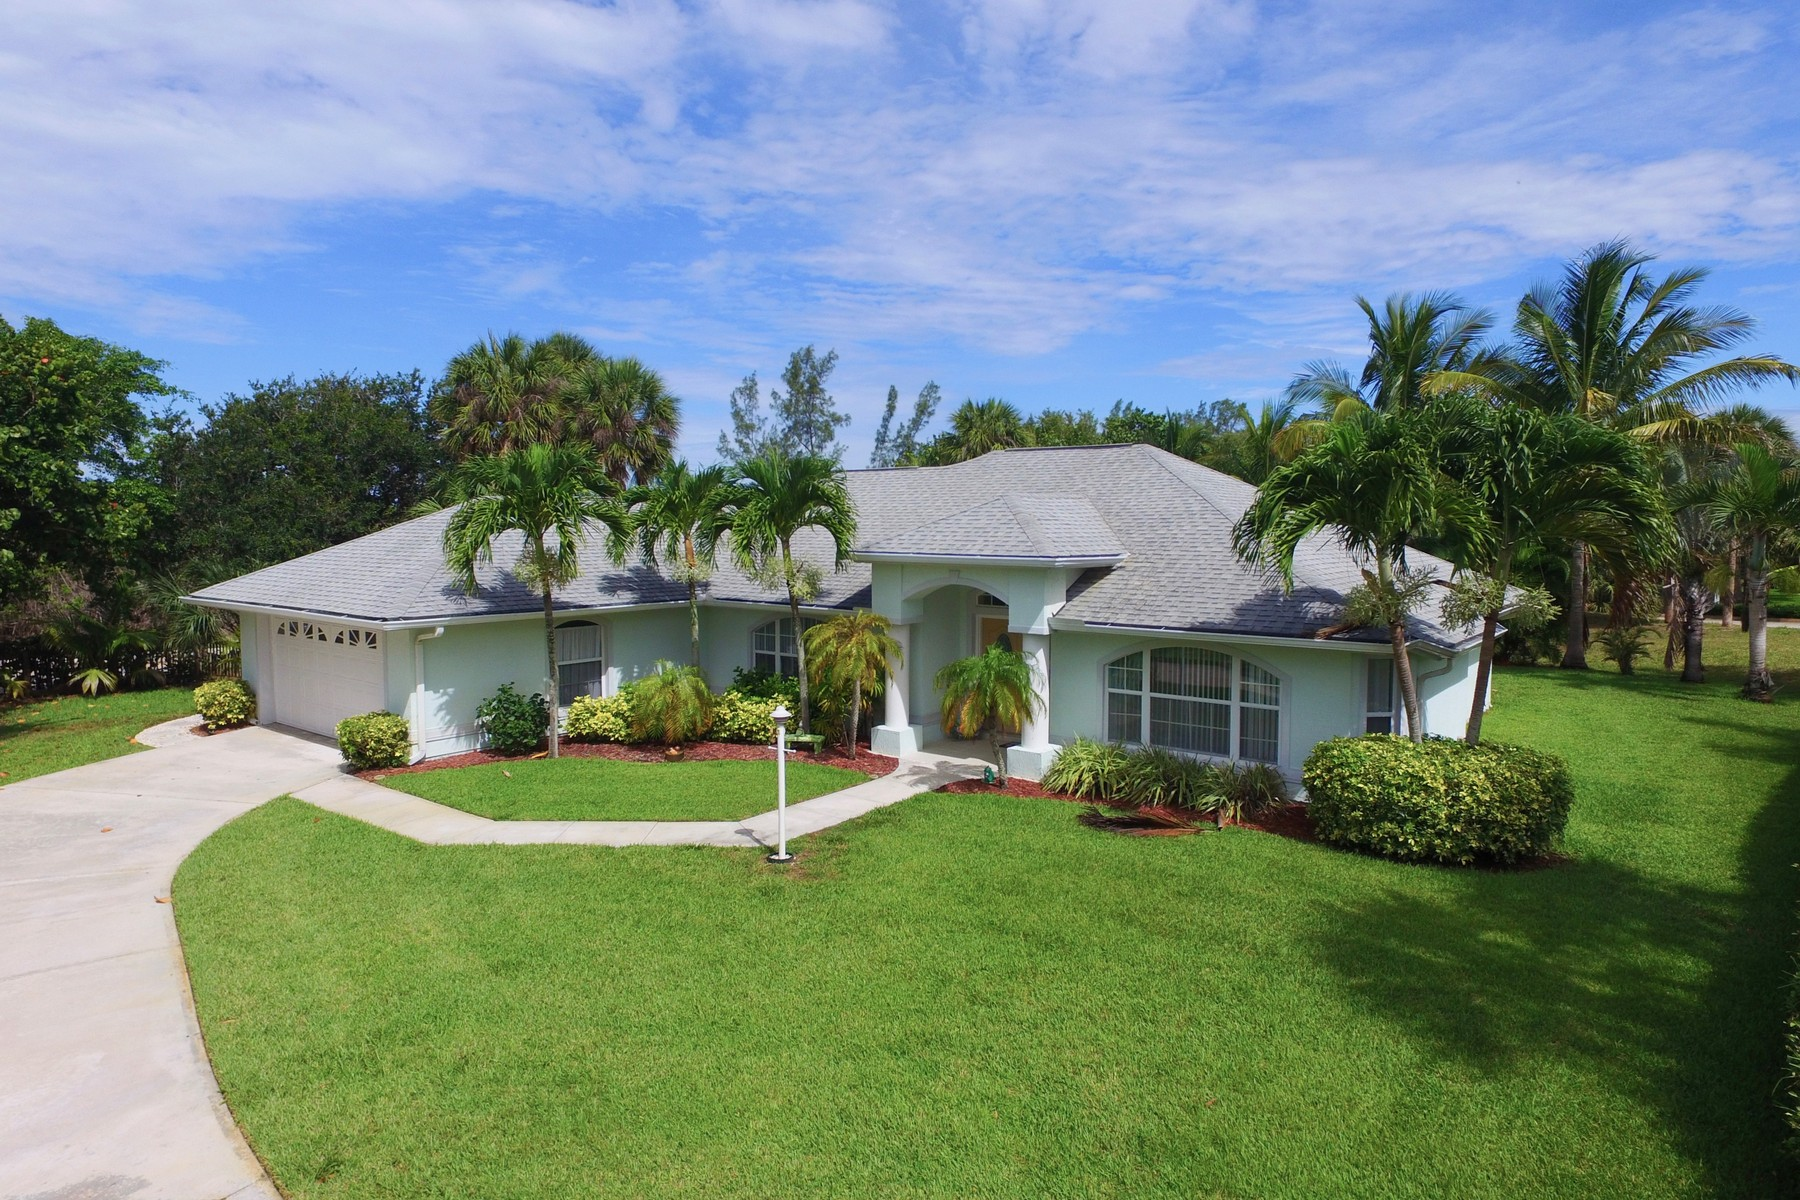 Property for Sale at Tropical Beachside Retreat 1356 Plato Court Vero Beach, Florida 32963 United States